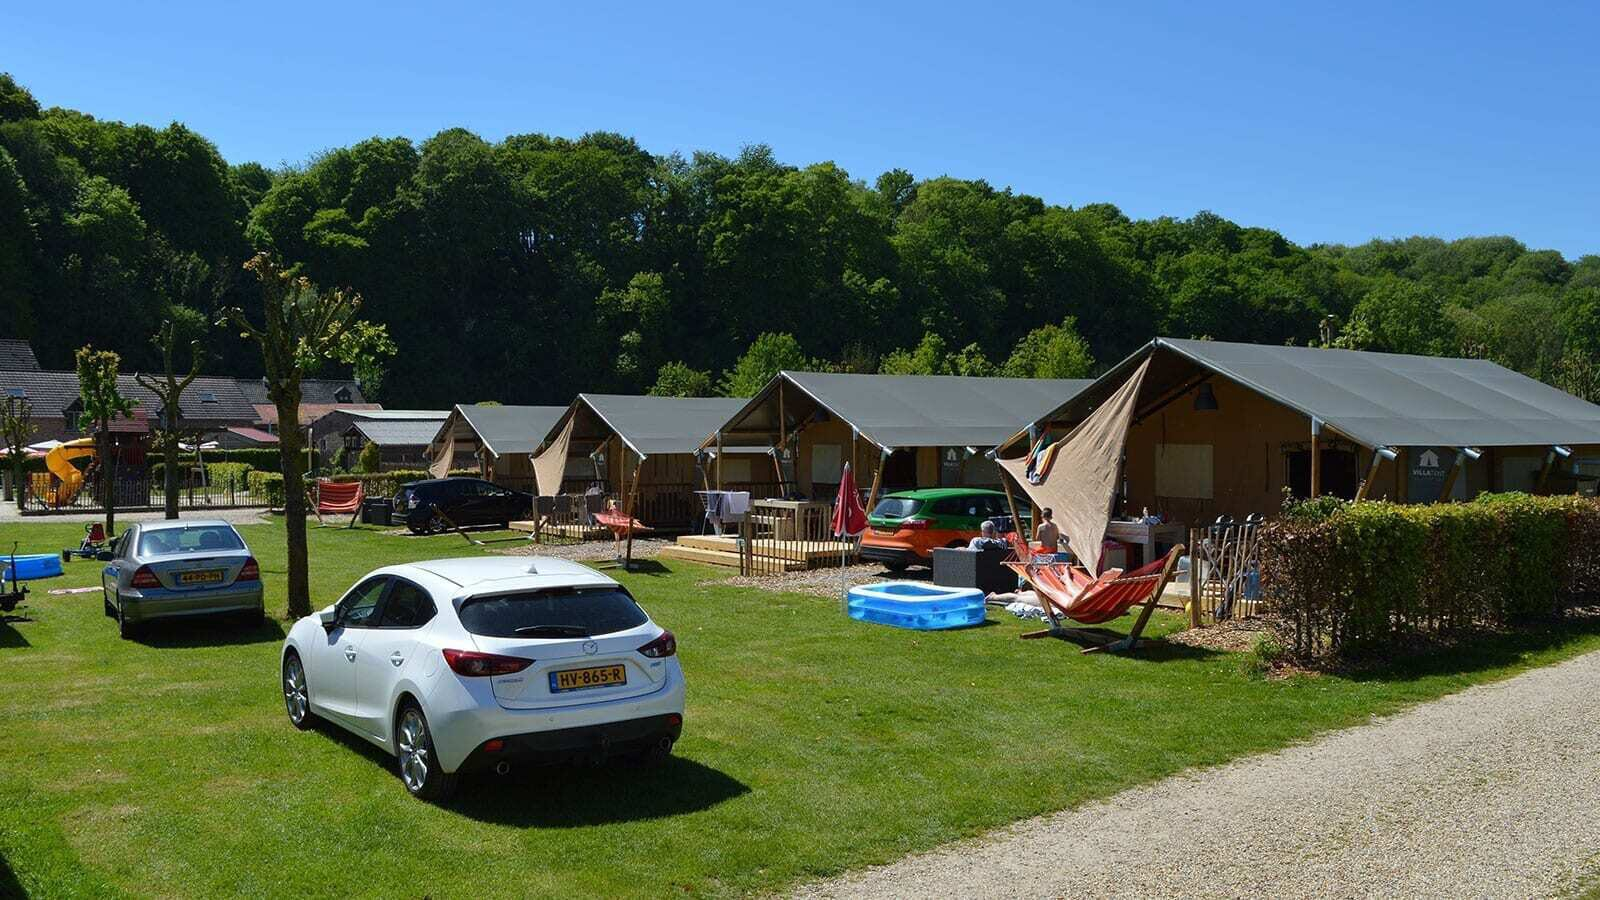 Camping - 't Geuldal